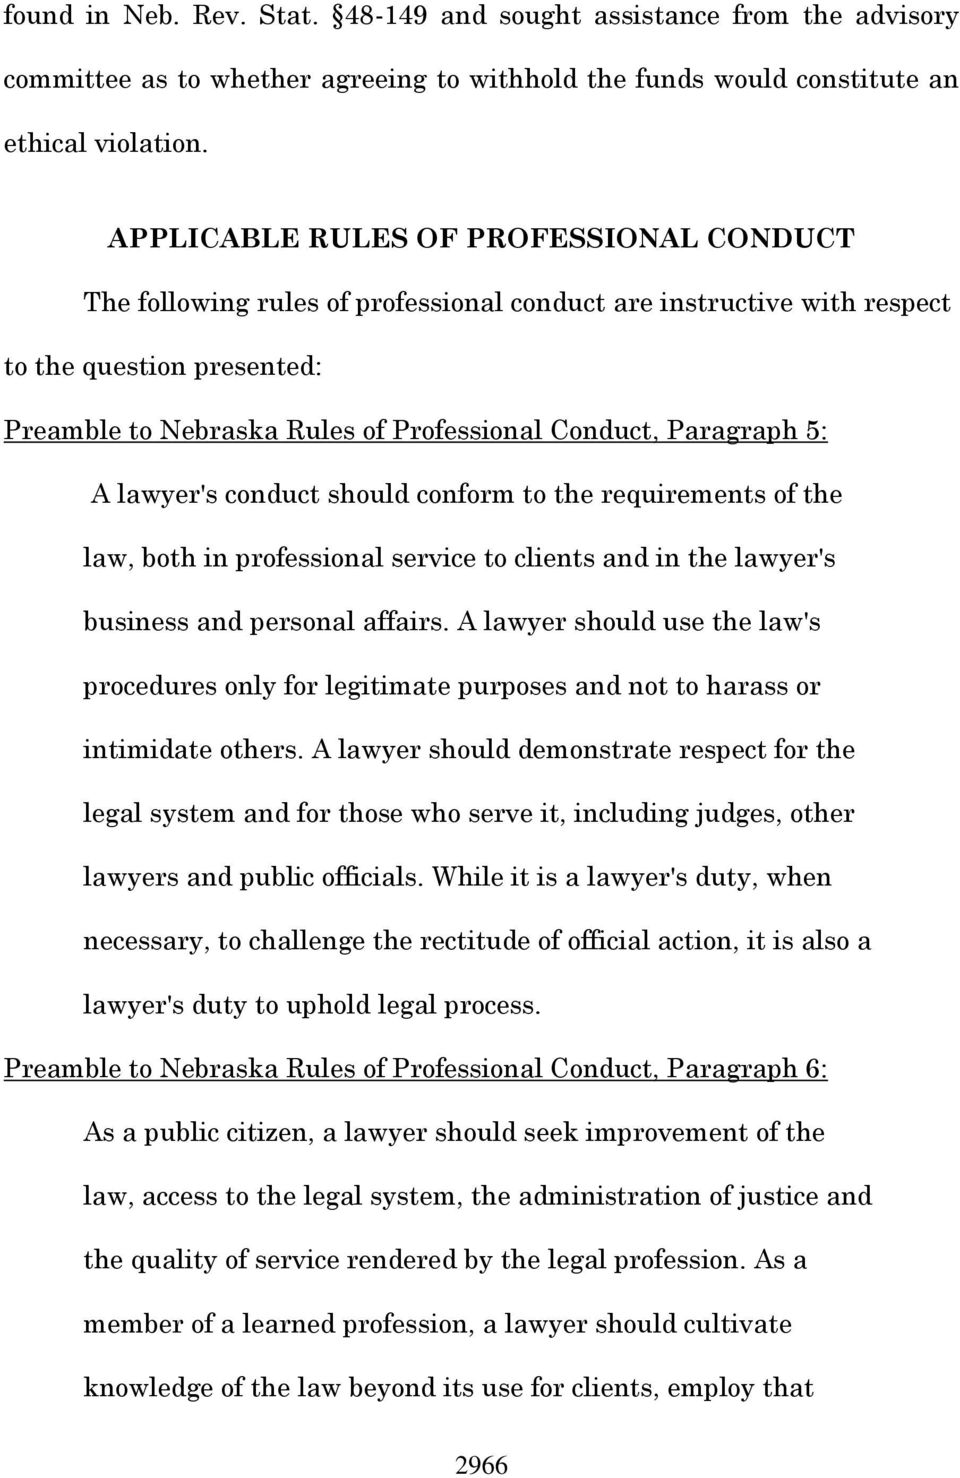 Paragraph 5: A lawyer's conduct should conform to the requirements of the law, both in professional service to clients and in the lawyer's business and personal affairs.